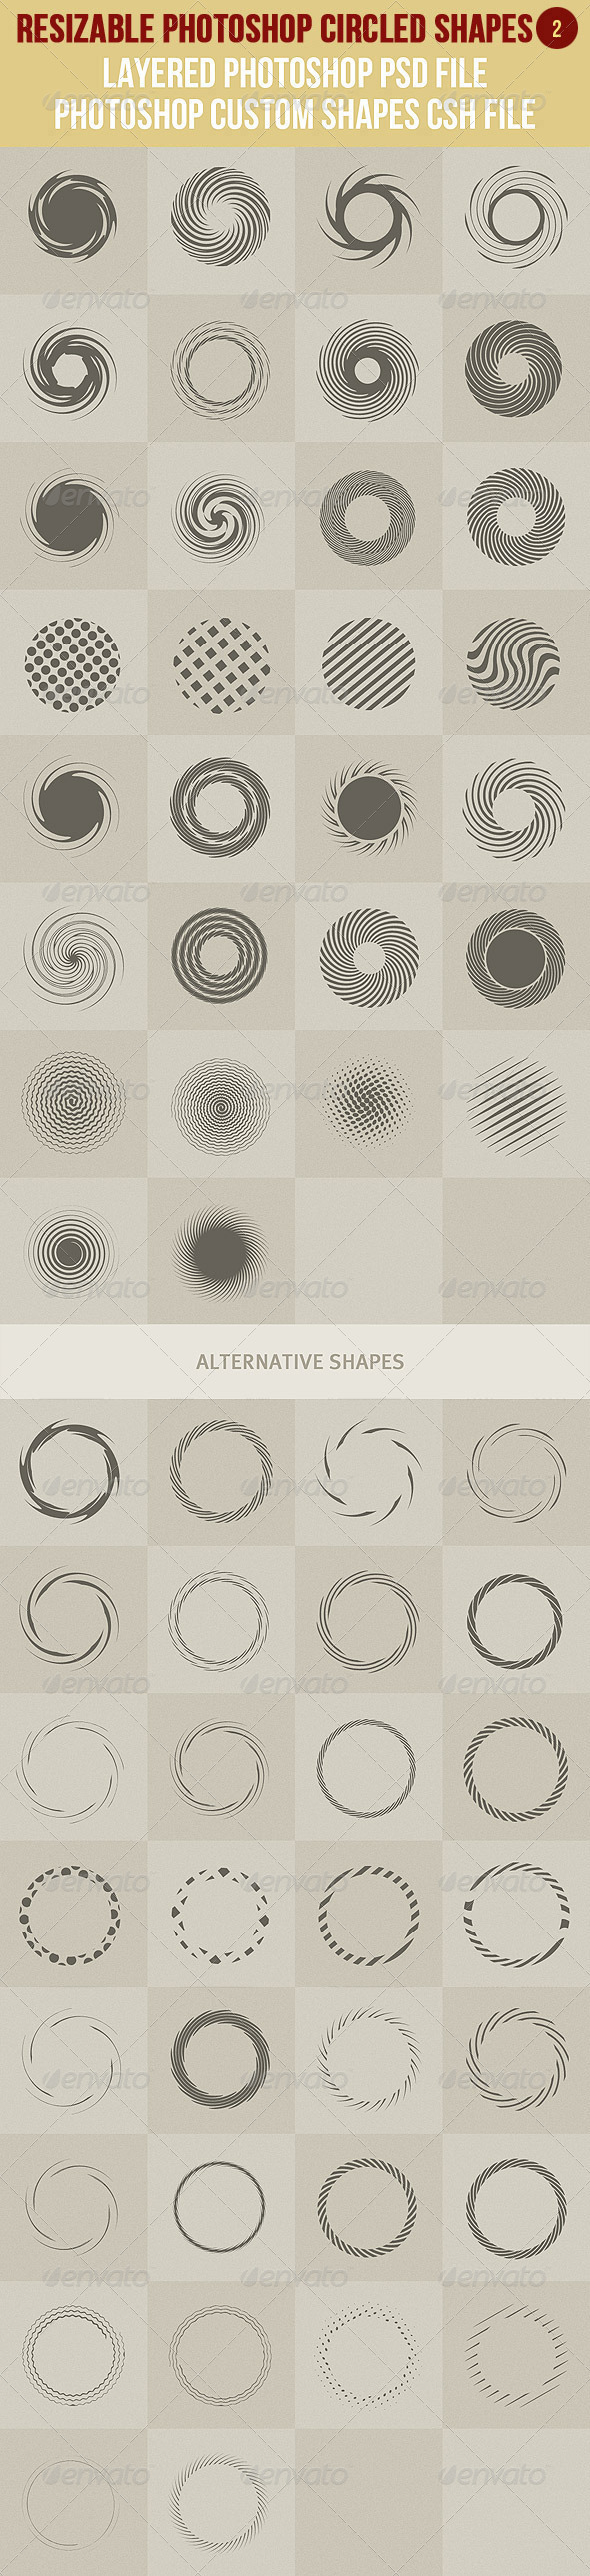 Photoshop Circled Shapes 2 - Symbols Shapes